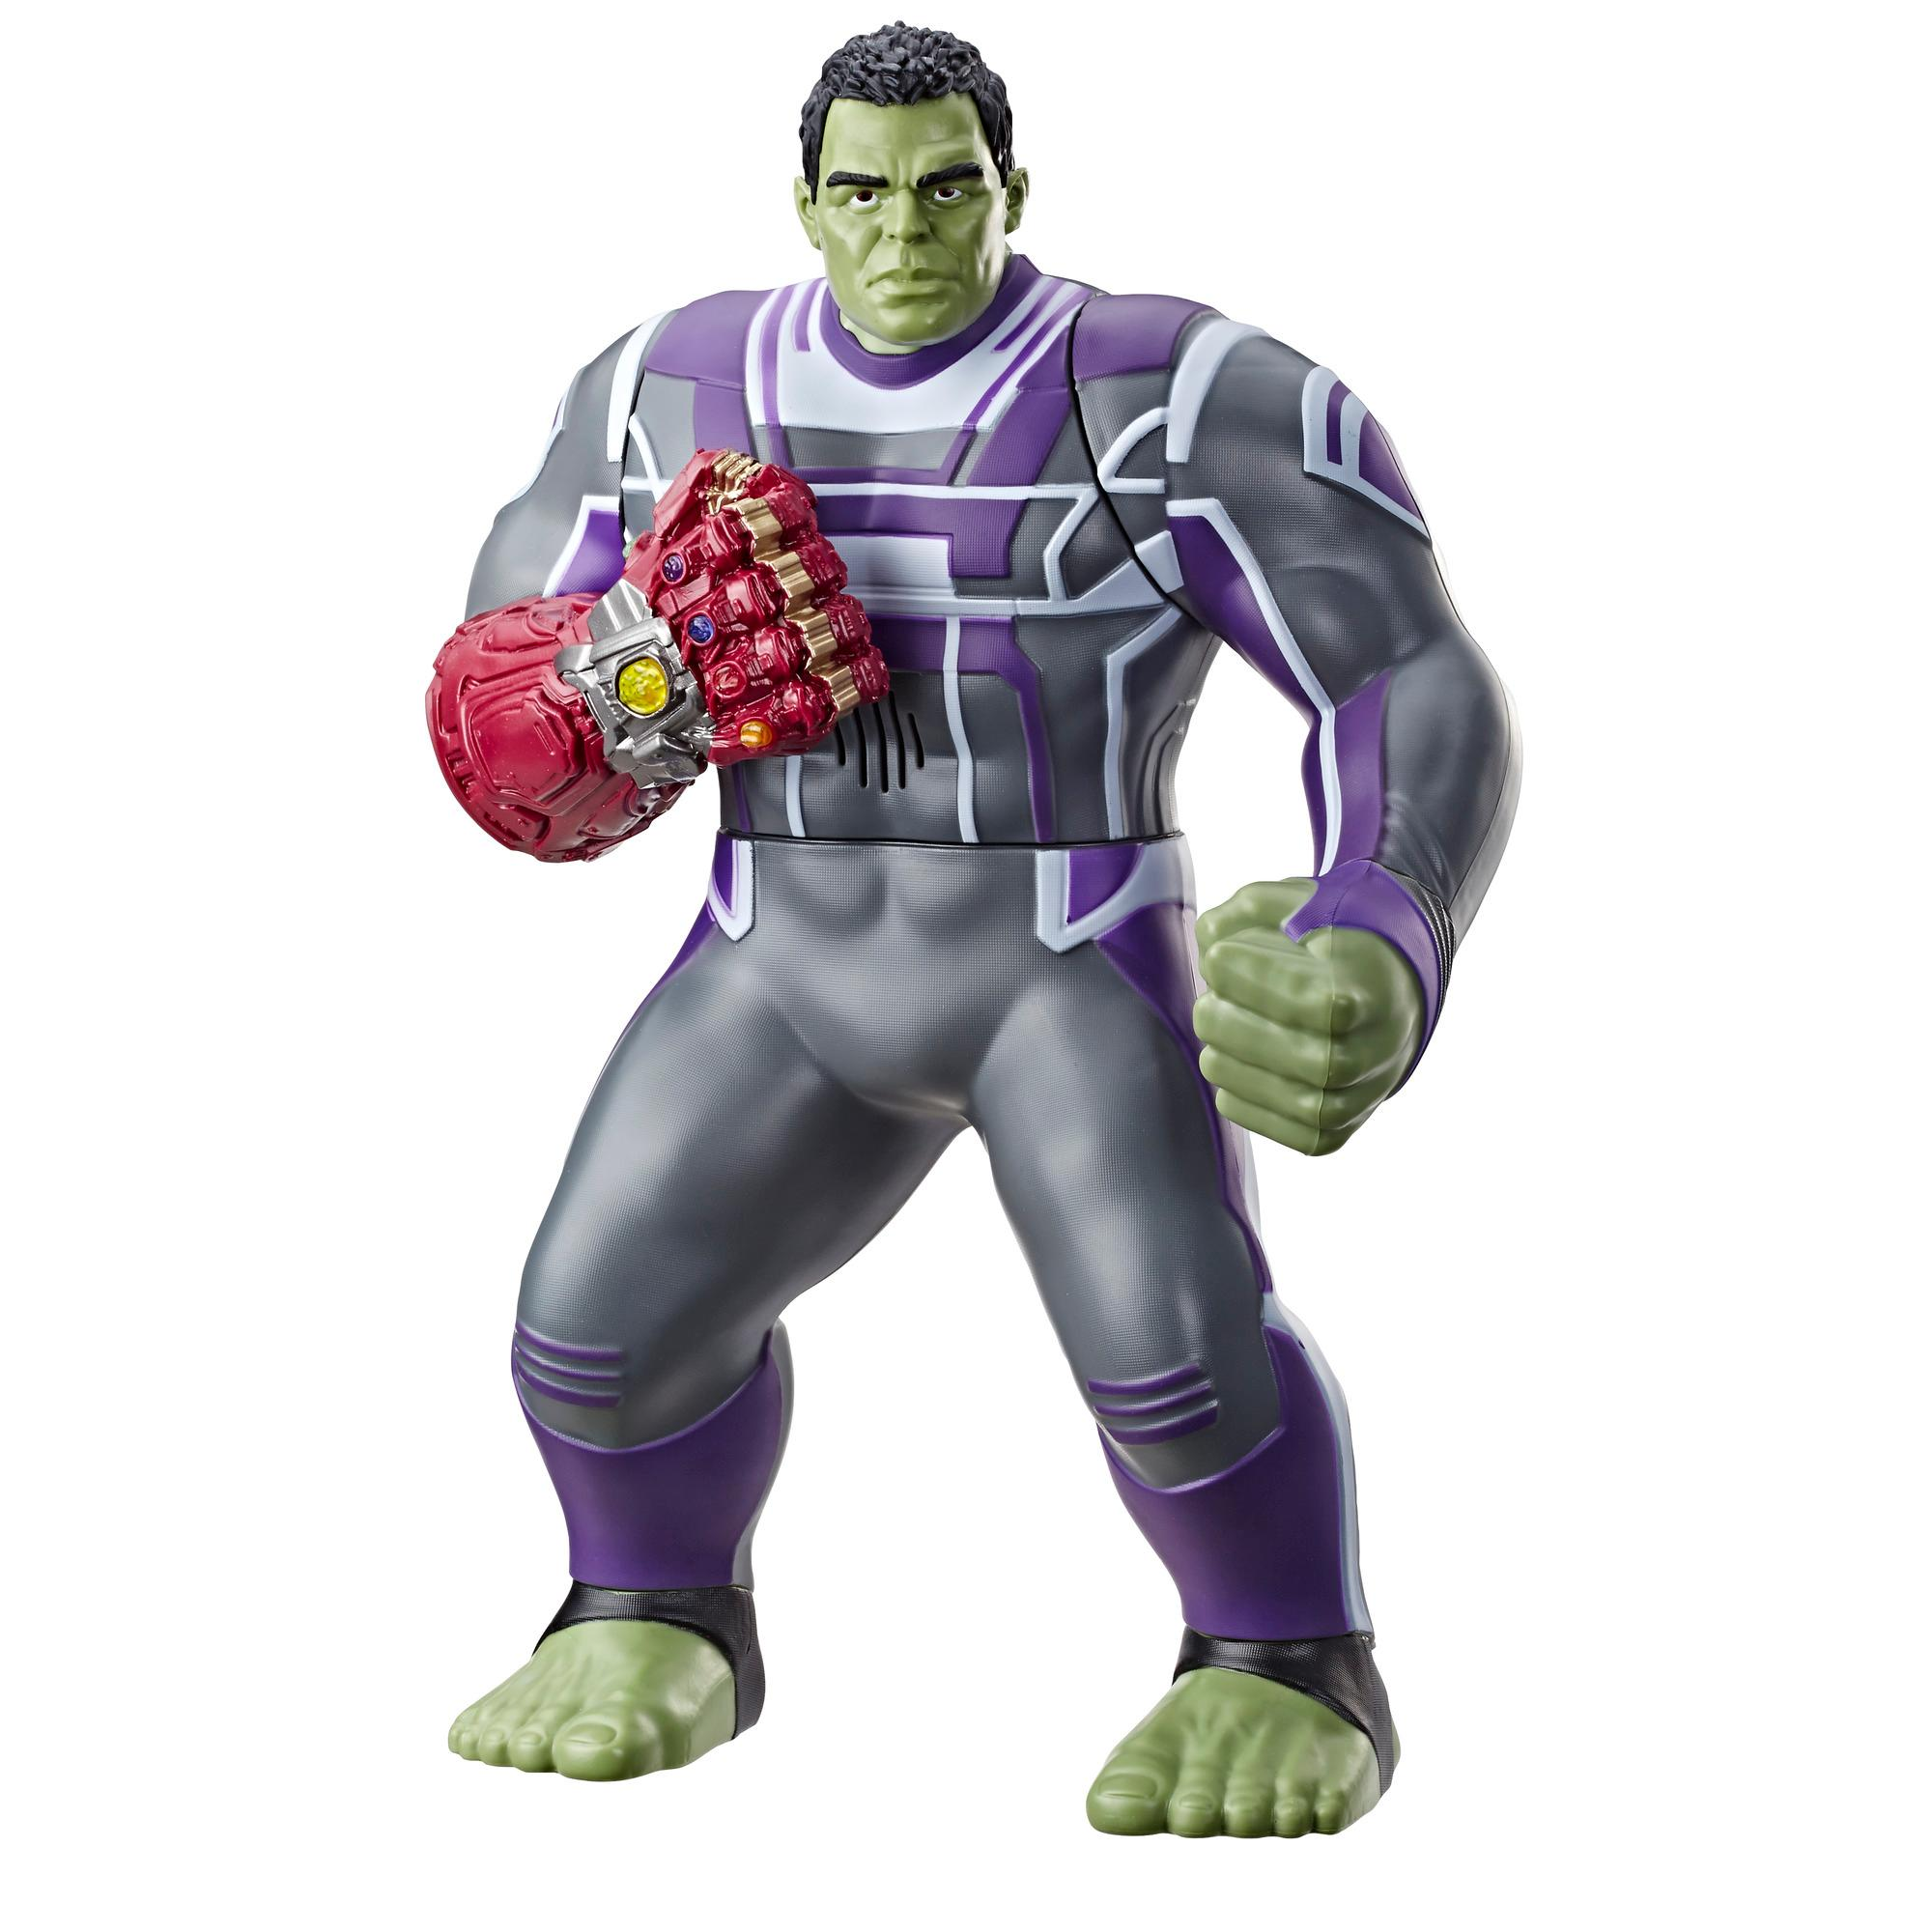 Marvel Avengers: Endgame Power Punch Hulk 13.75-Inch Action Figure